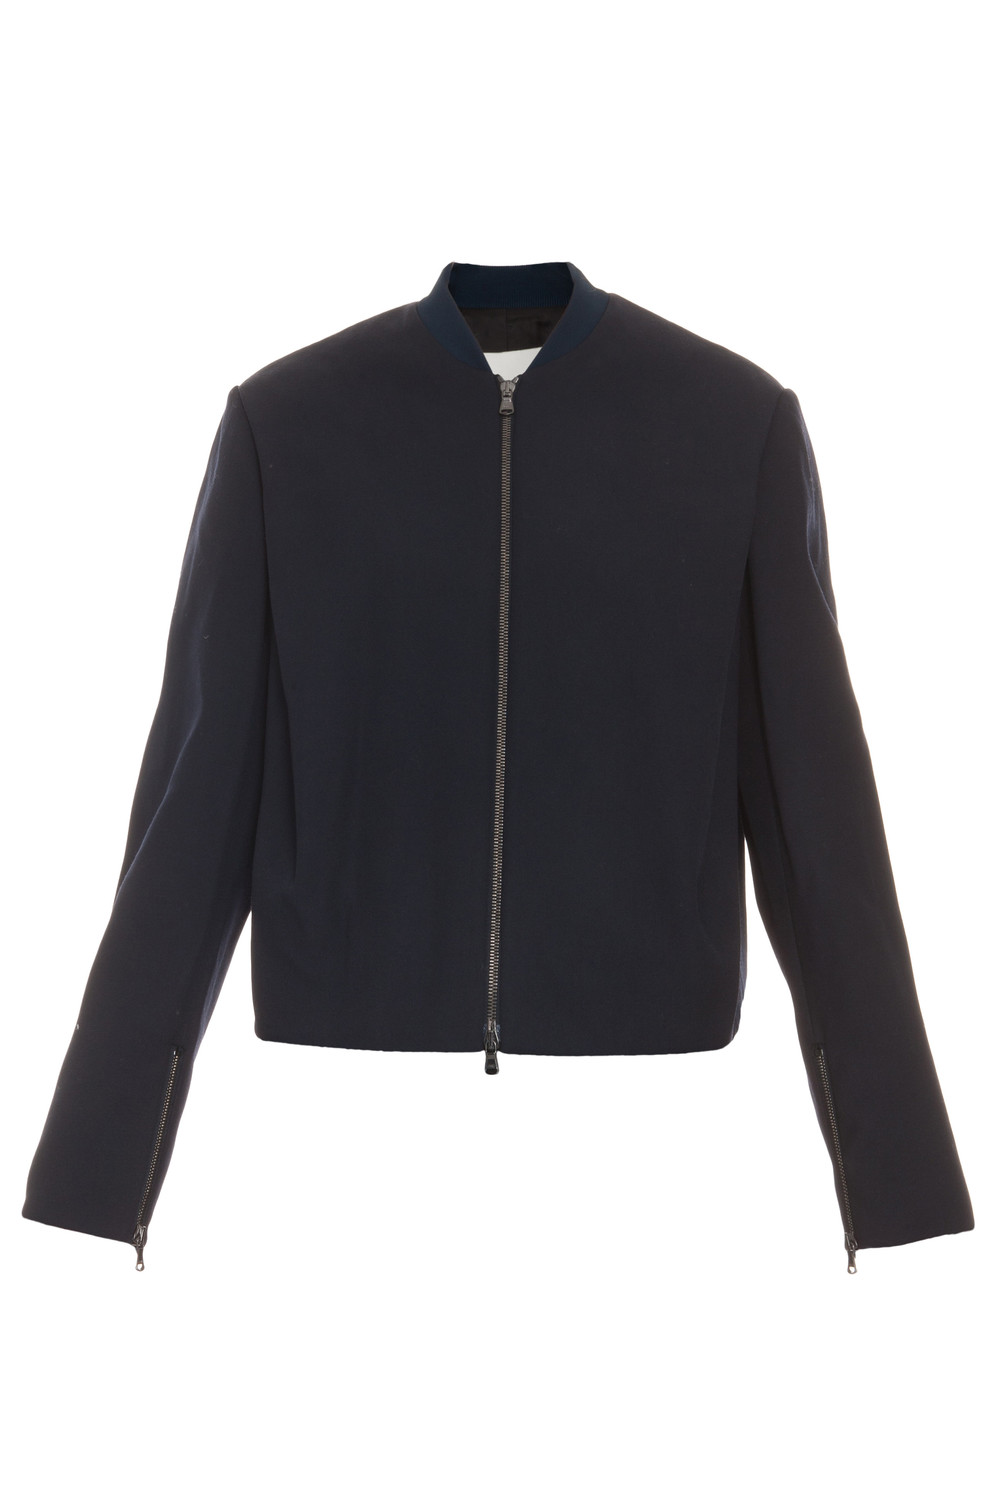 3.1 Phillip Lim - shirt tail bomber jacket - women - Silk ...